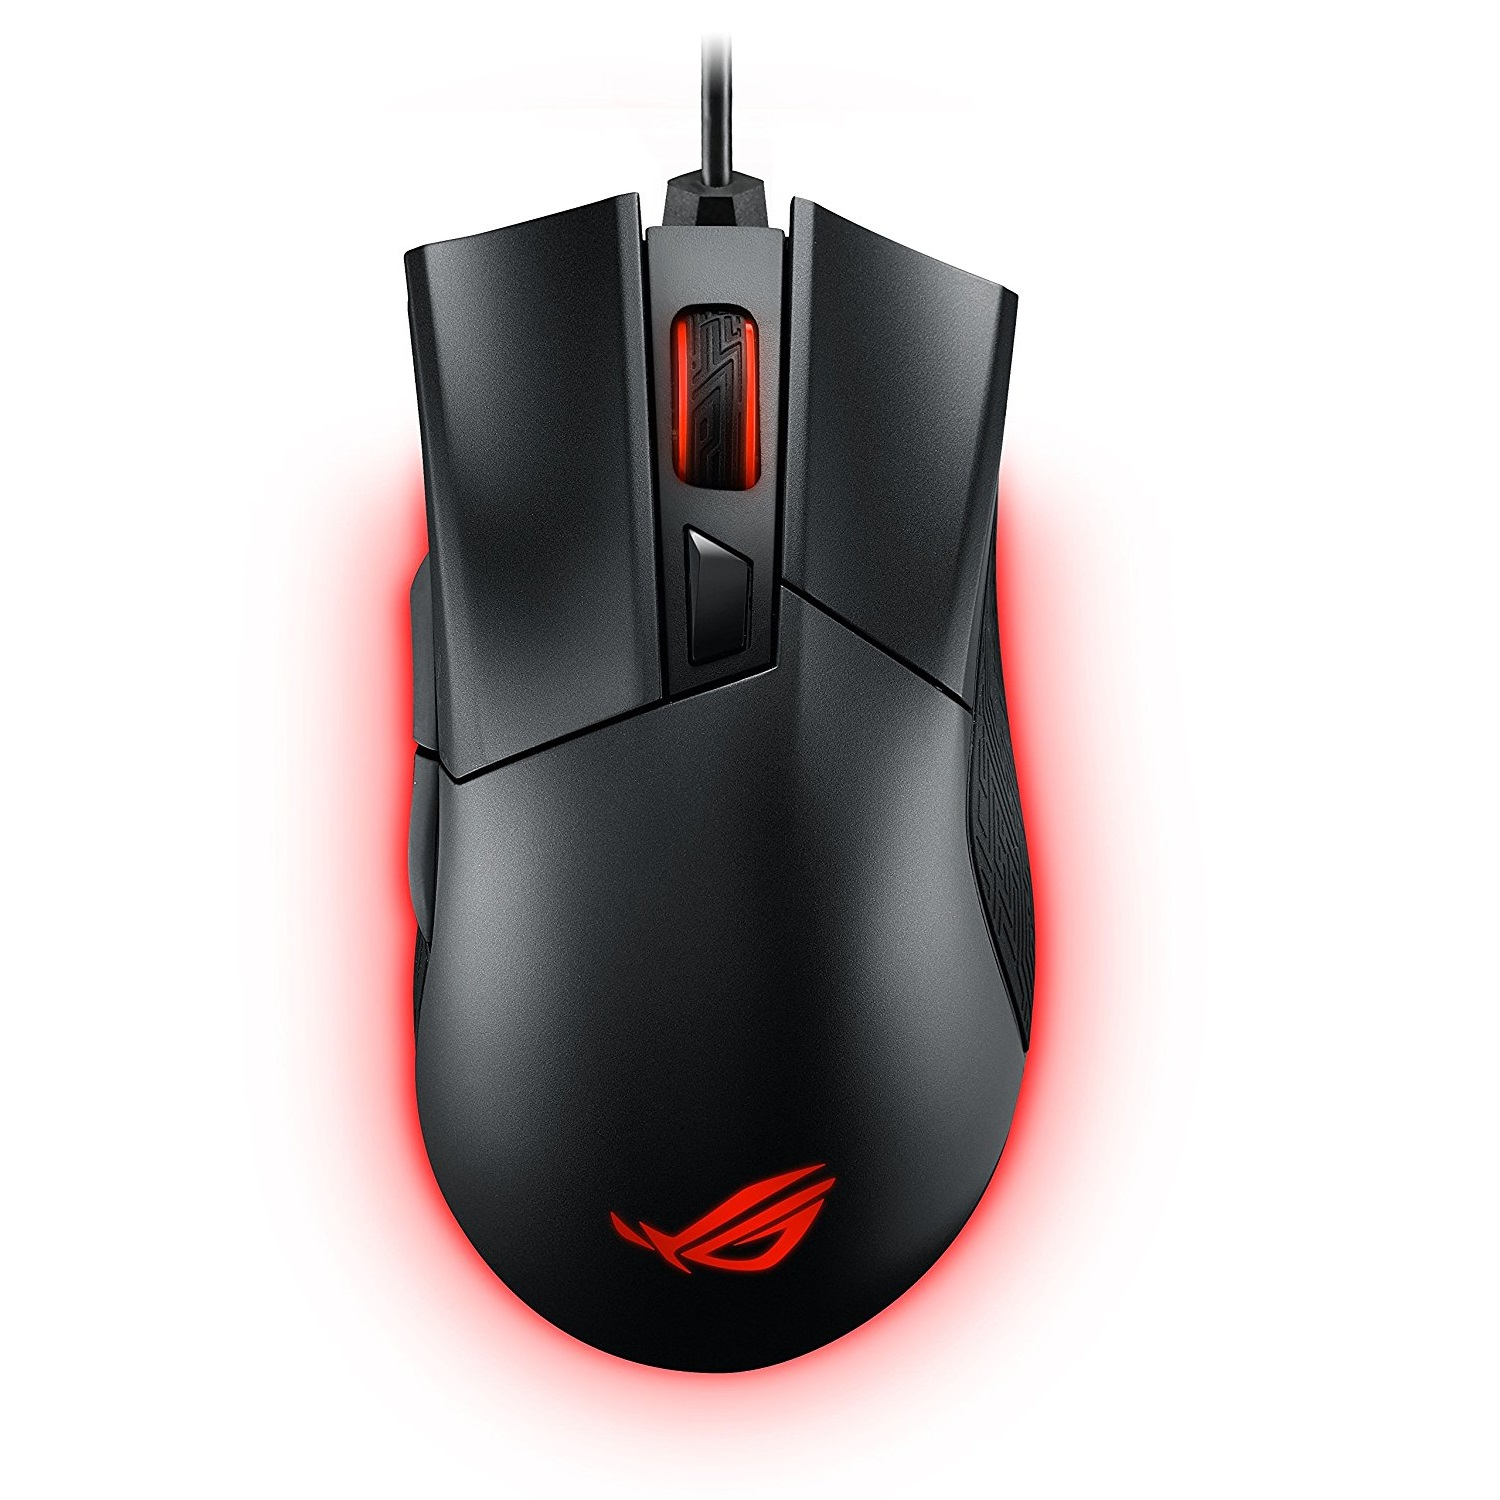 ASUS-ROG-Gladius-II-2-Aura-Sync-Wired-PNK-Wireless-Gaming-Mouse-All-Models-VS thumbnail 8